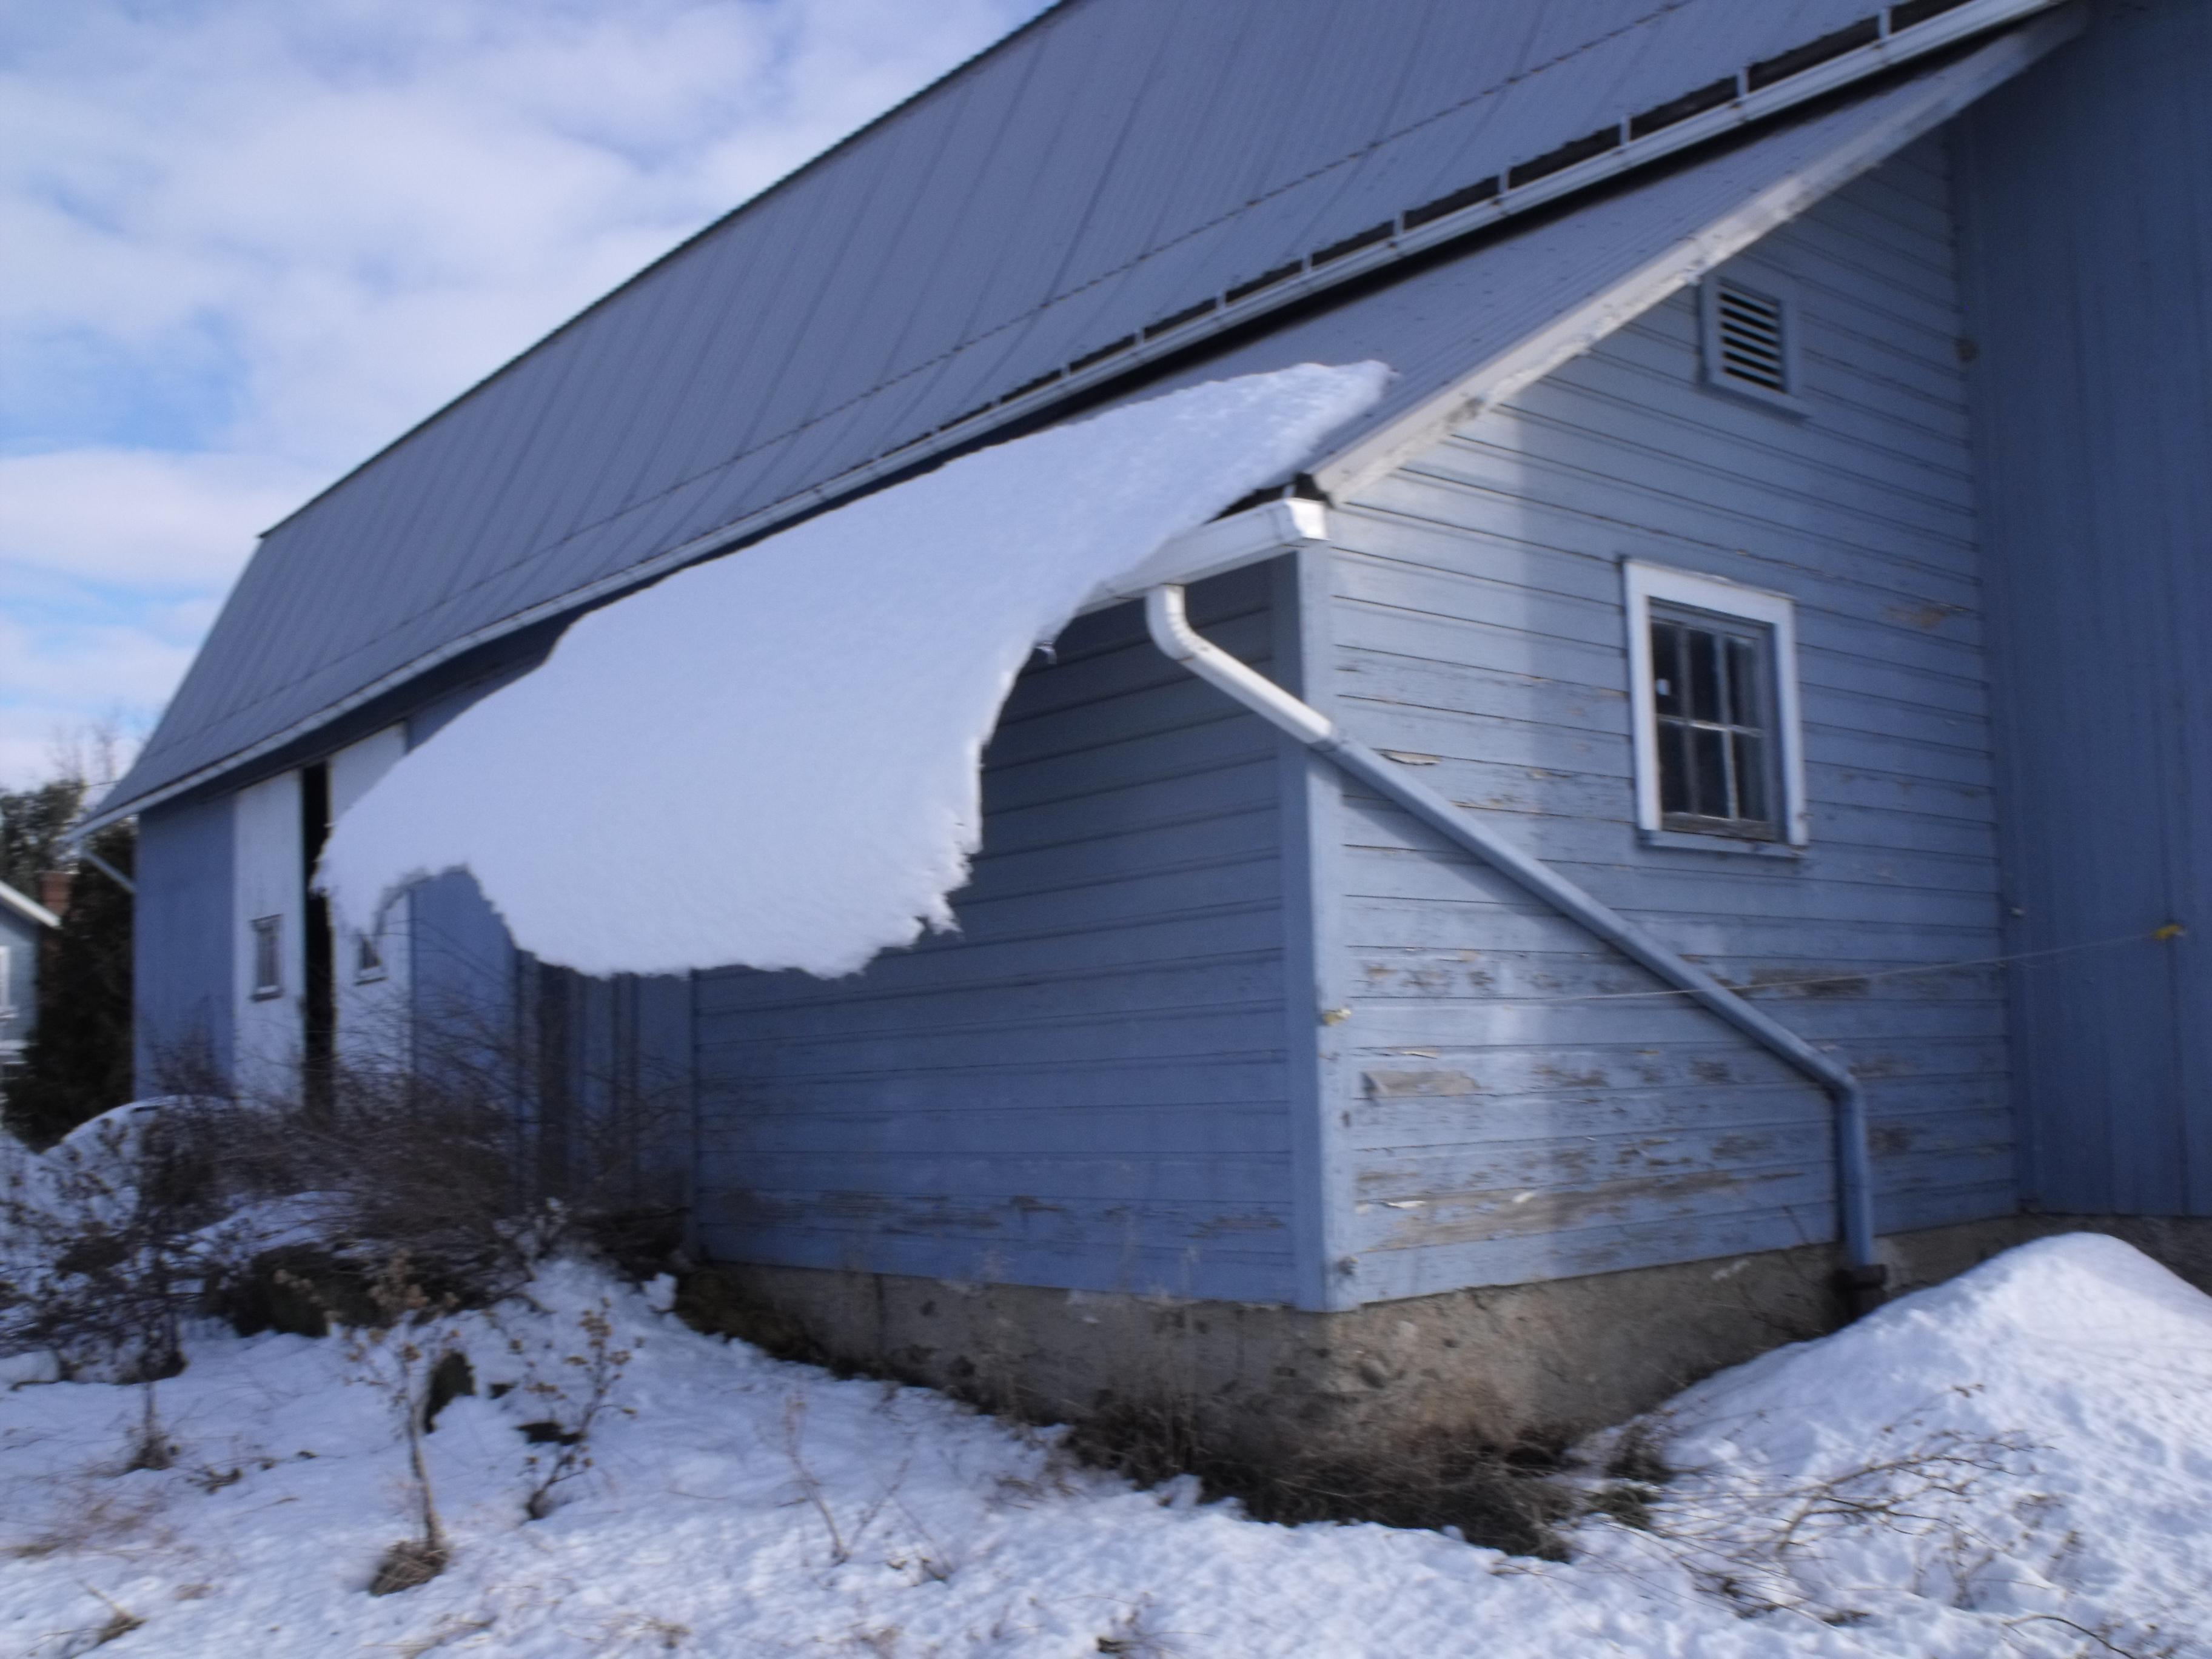 horse barn with melting snow